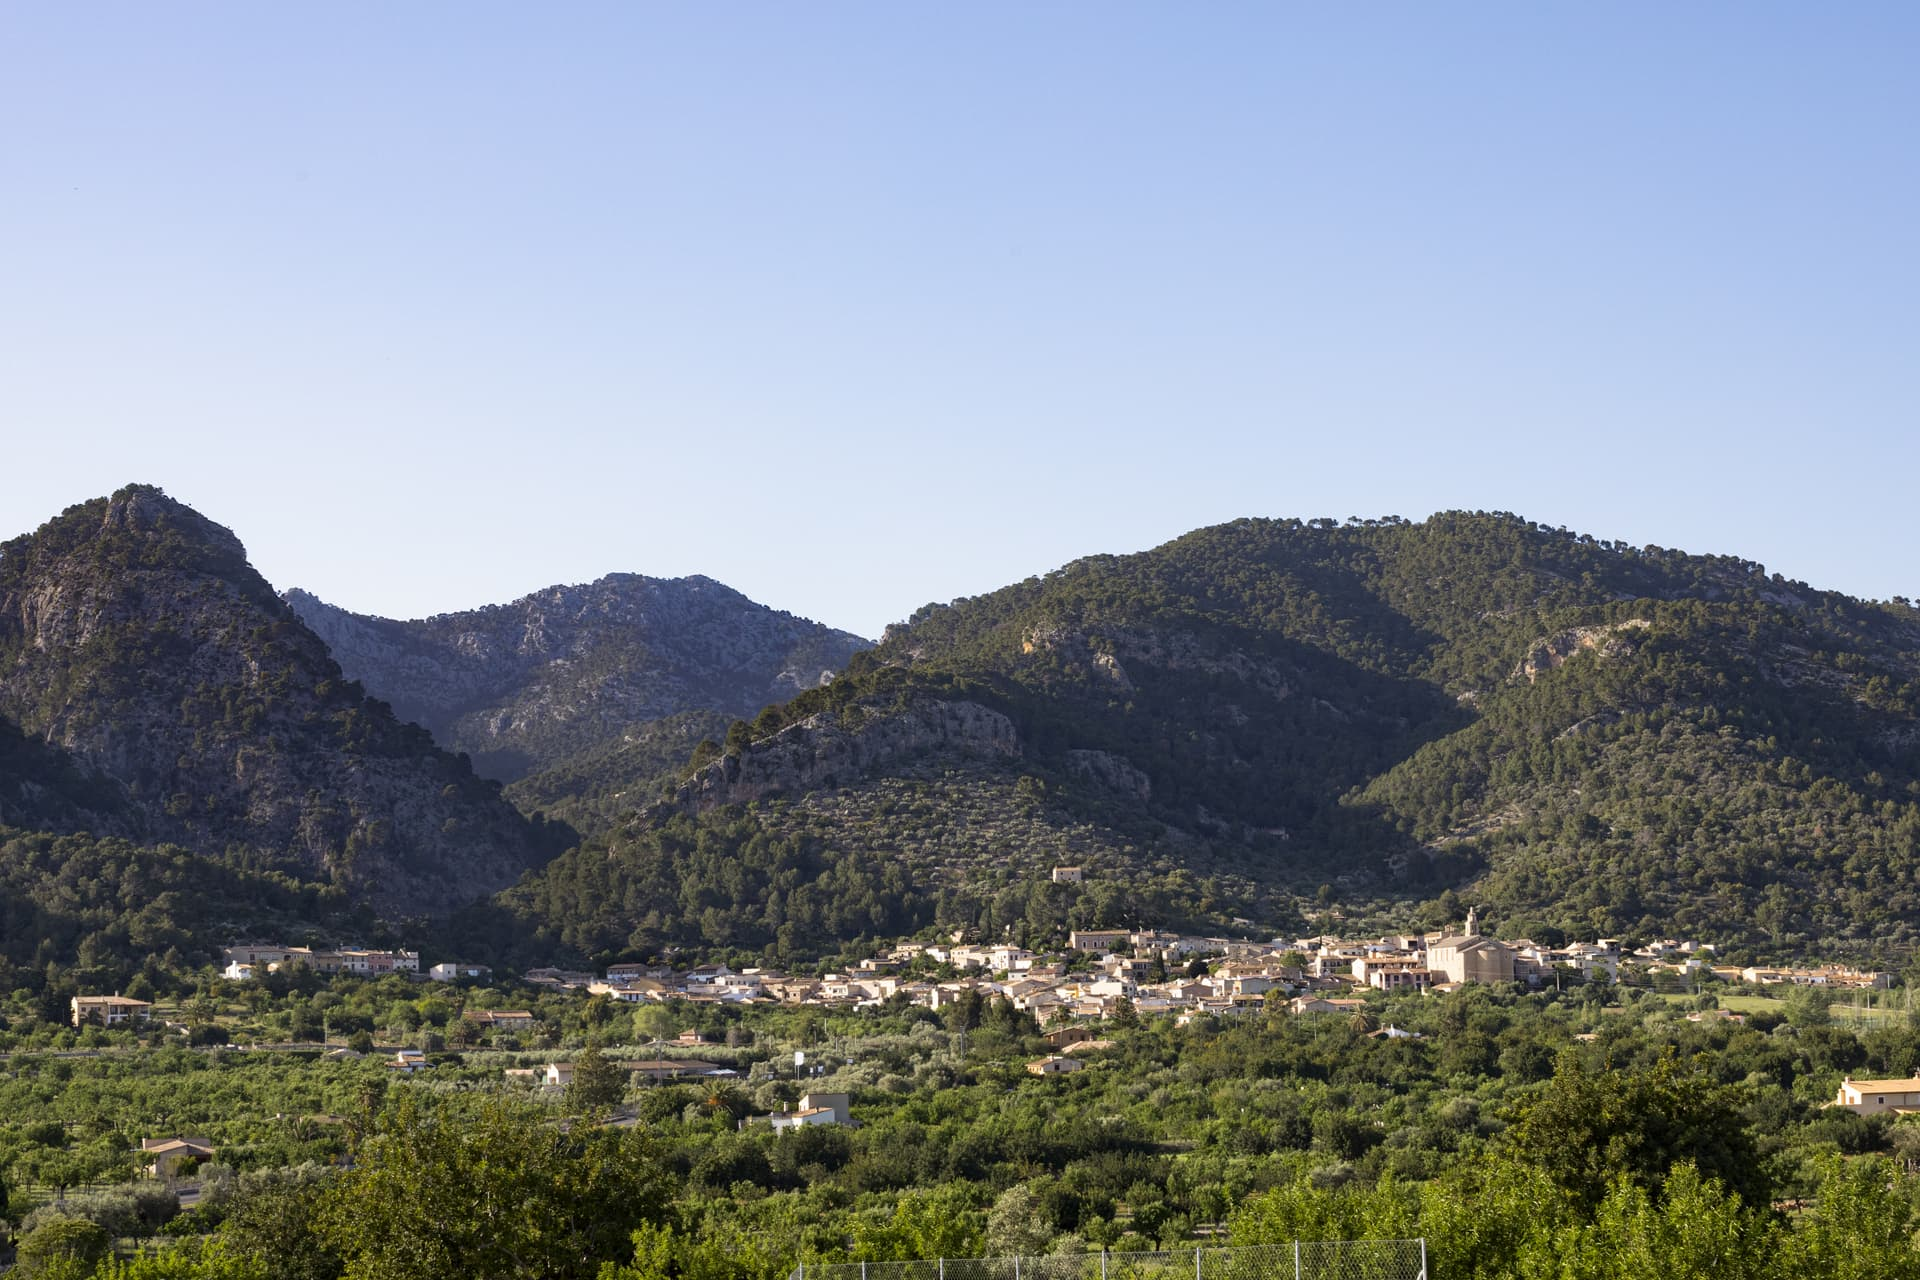 Caimari at the foot of the Sierra de Tramuntana.